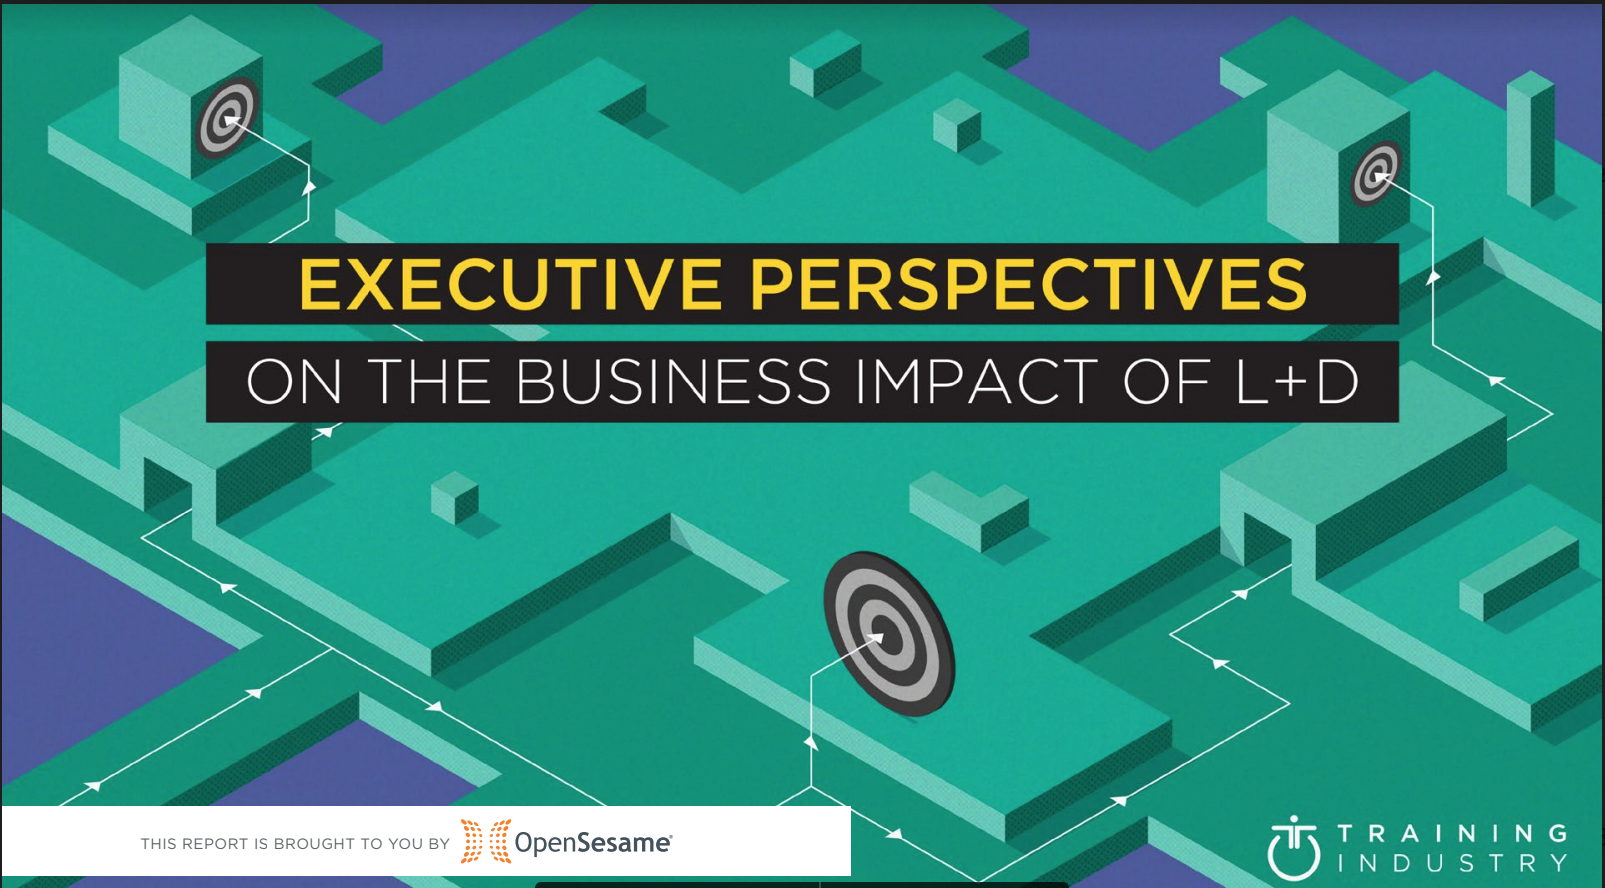 Green building blocks with targets. Title executive perspectives on the business impact of L+D included. Opensesame